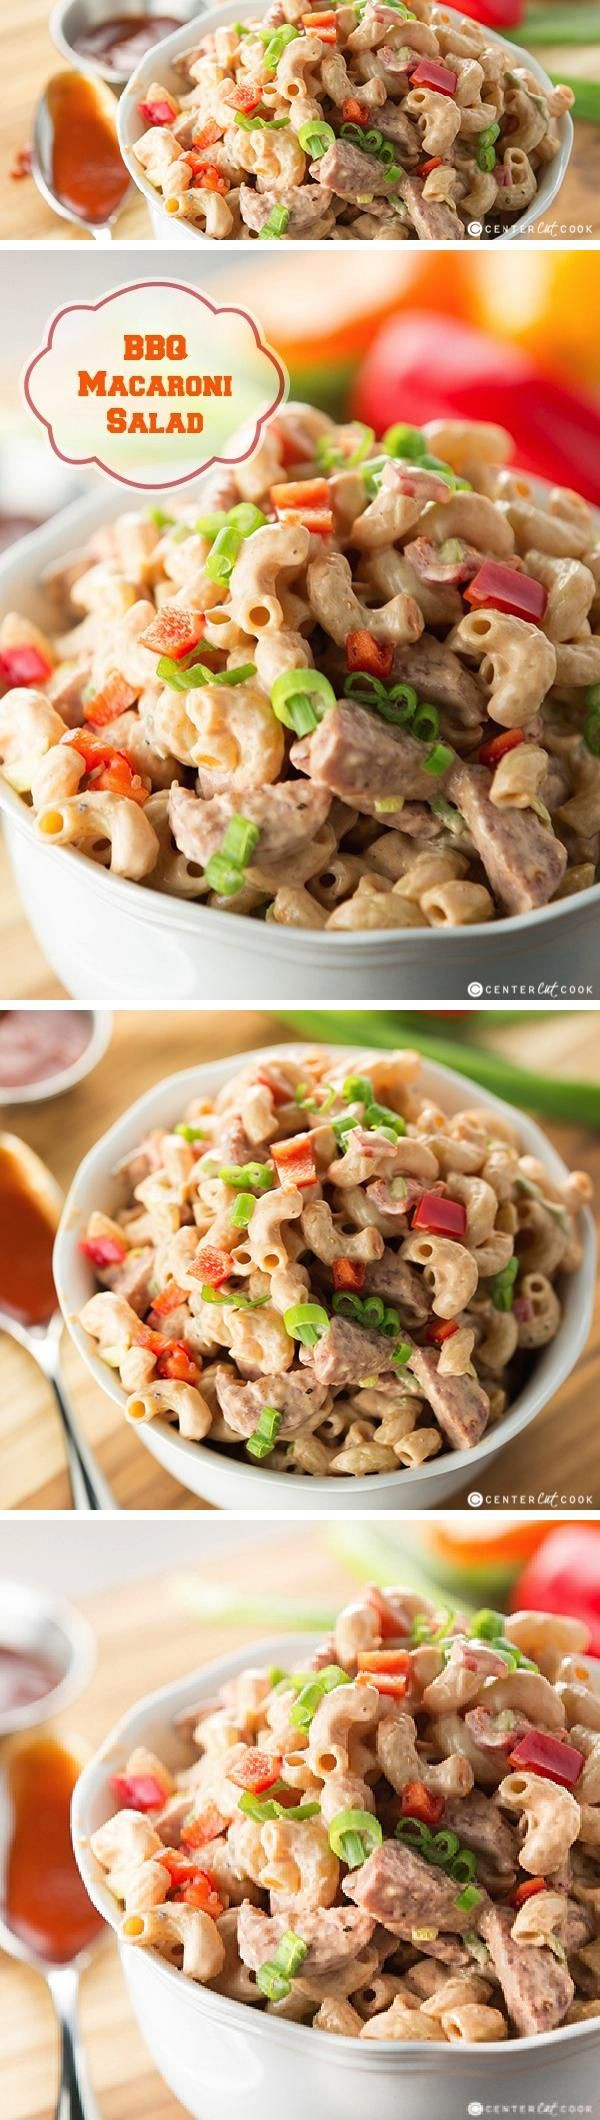 Cold Salads For Thanksgiving  17 Best images about Turkey Recipes on Pinterest